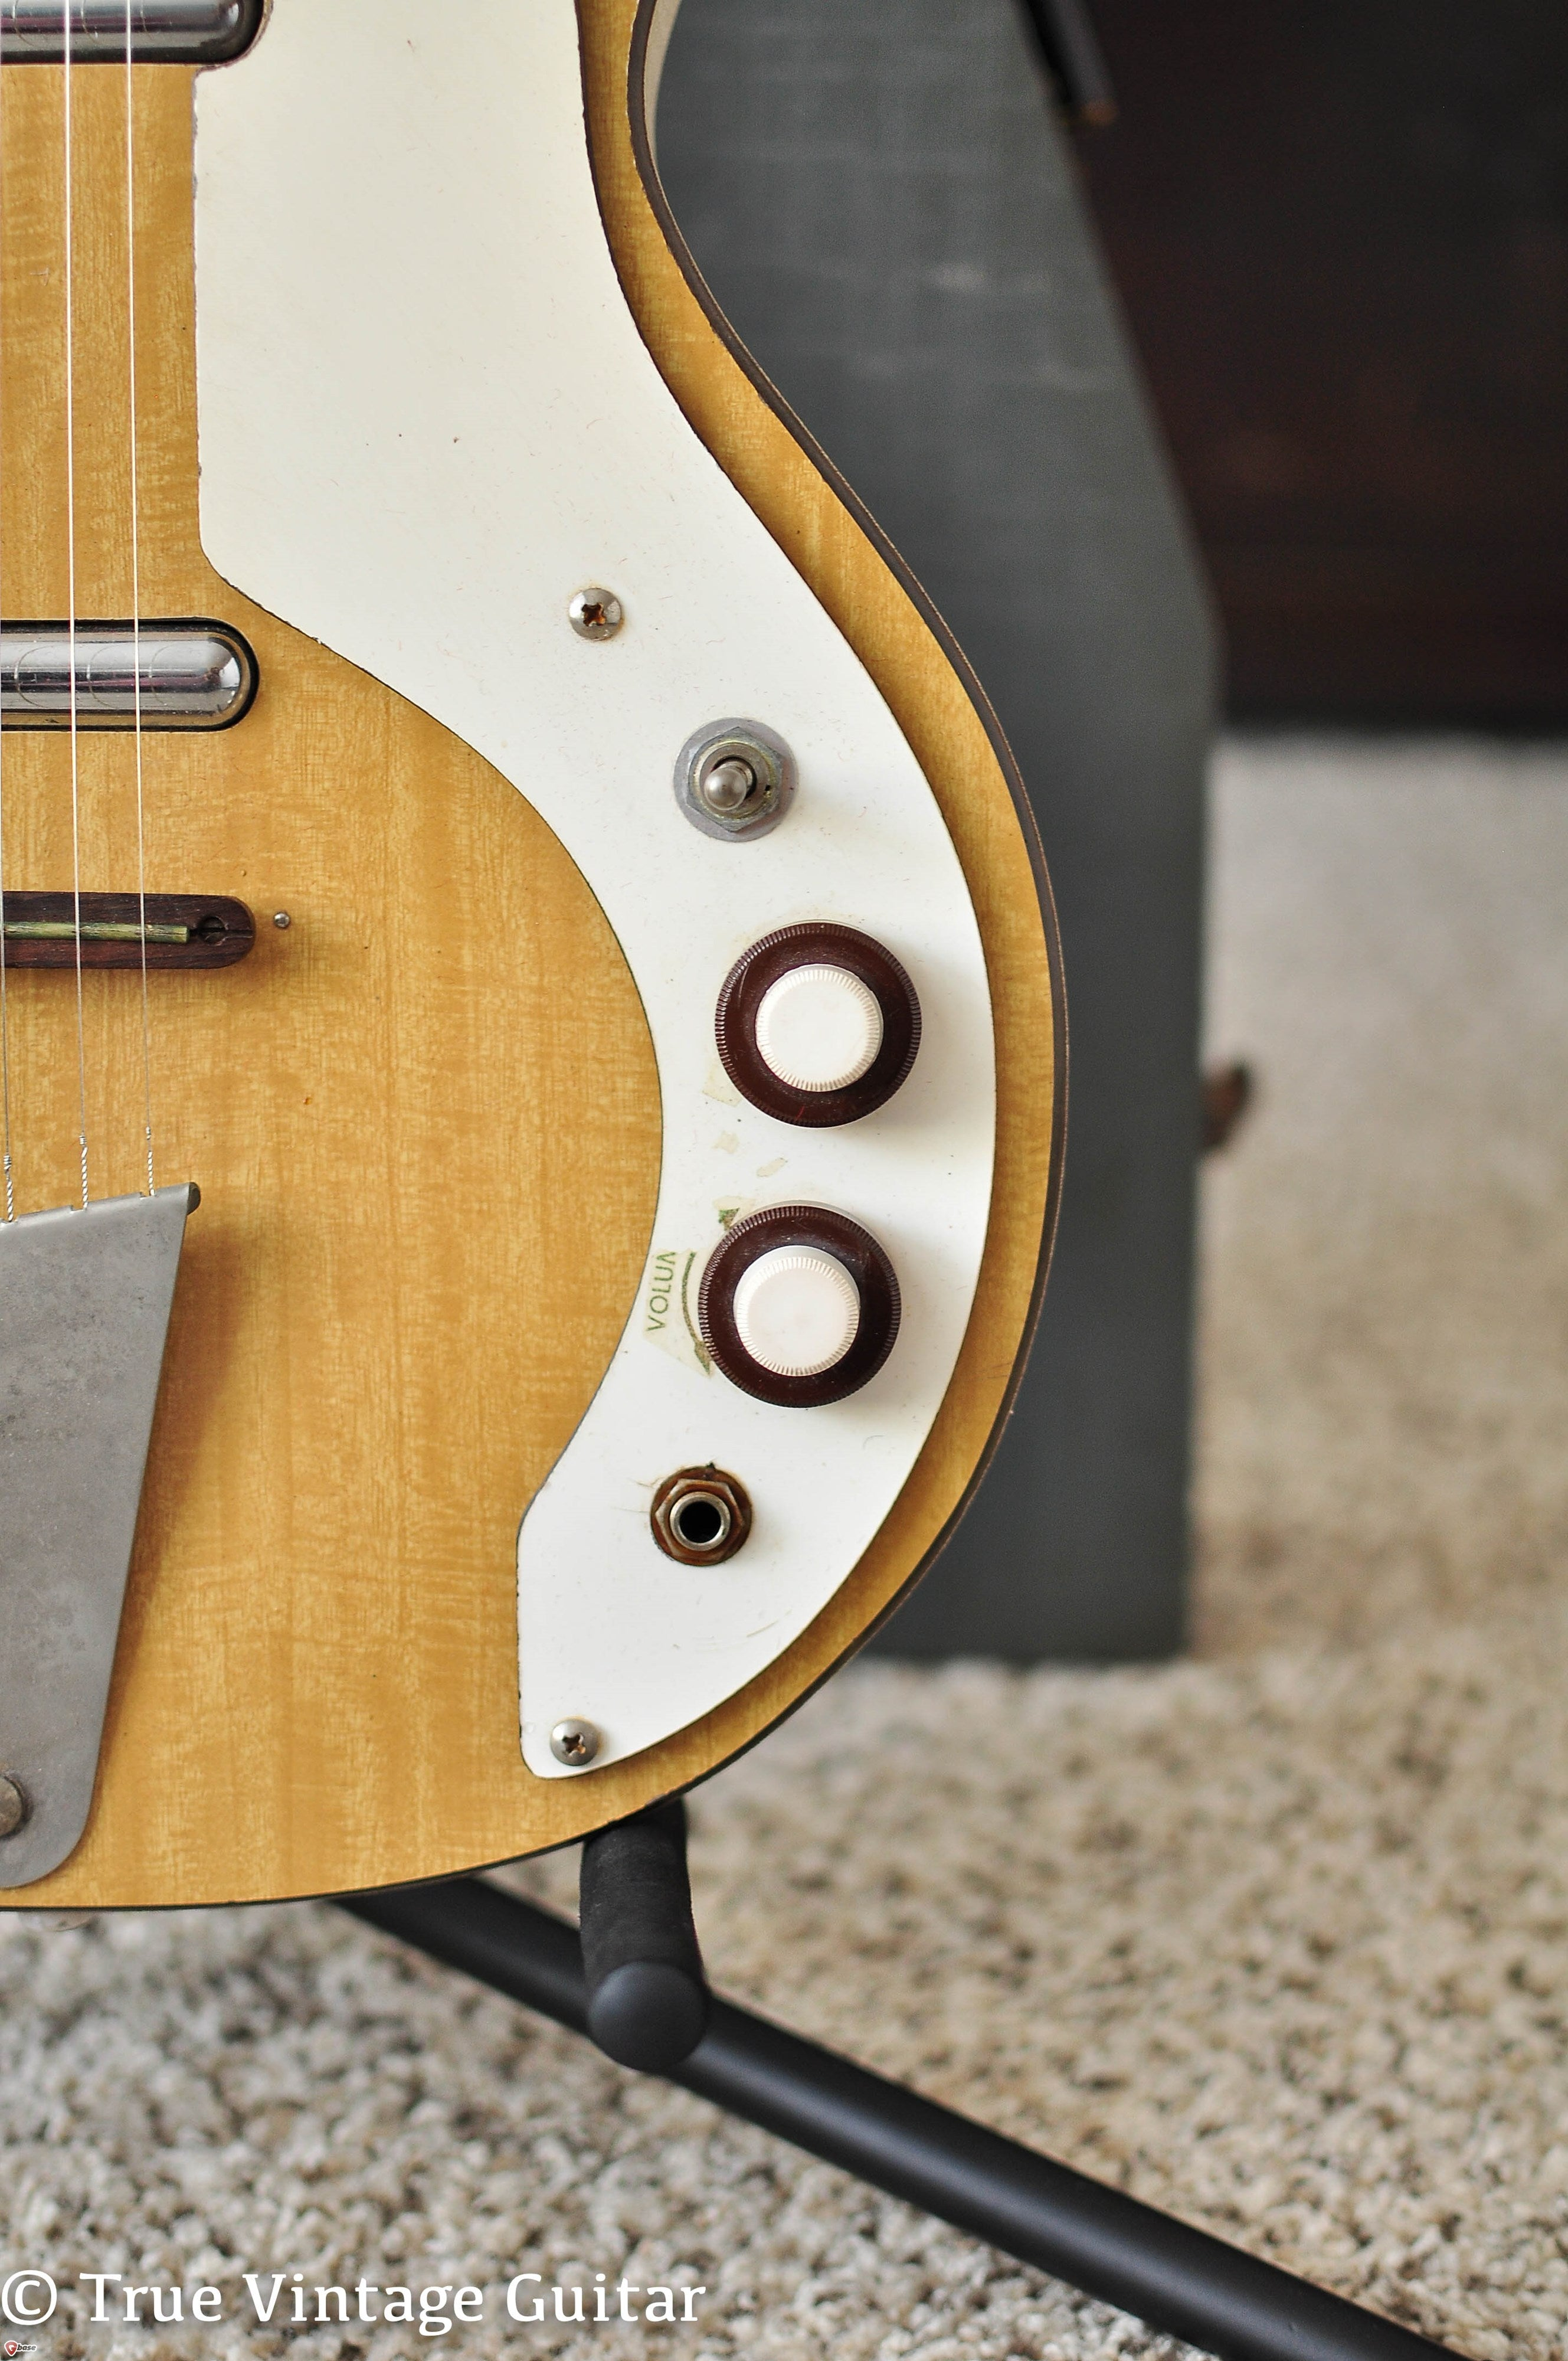 Concentric volume and tone knobs, Danelectro